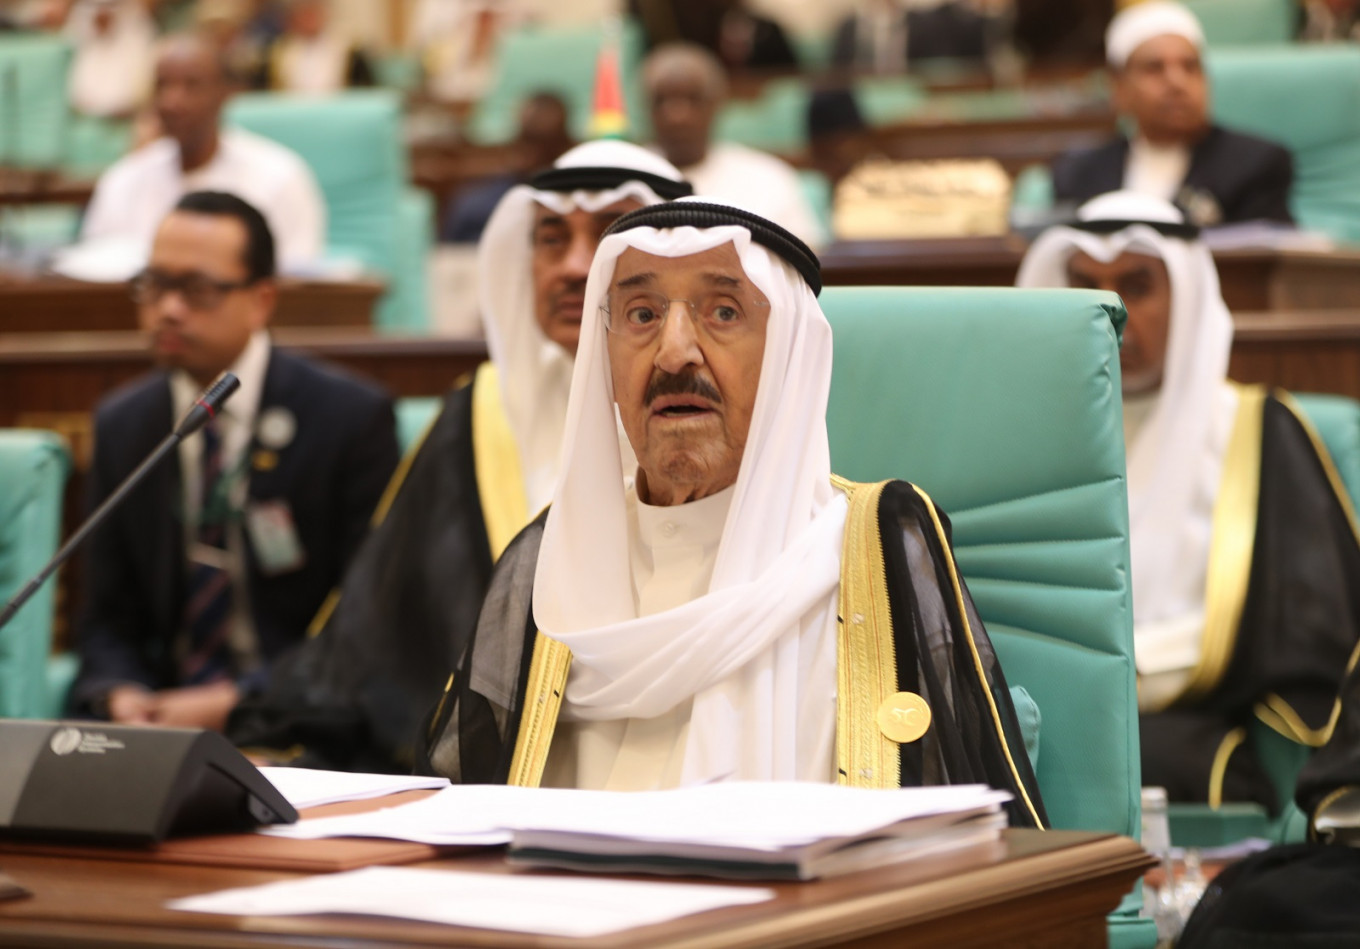 Kuwait's ruler hospitalized, crown prince steps in